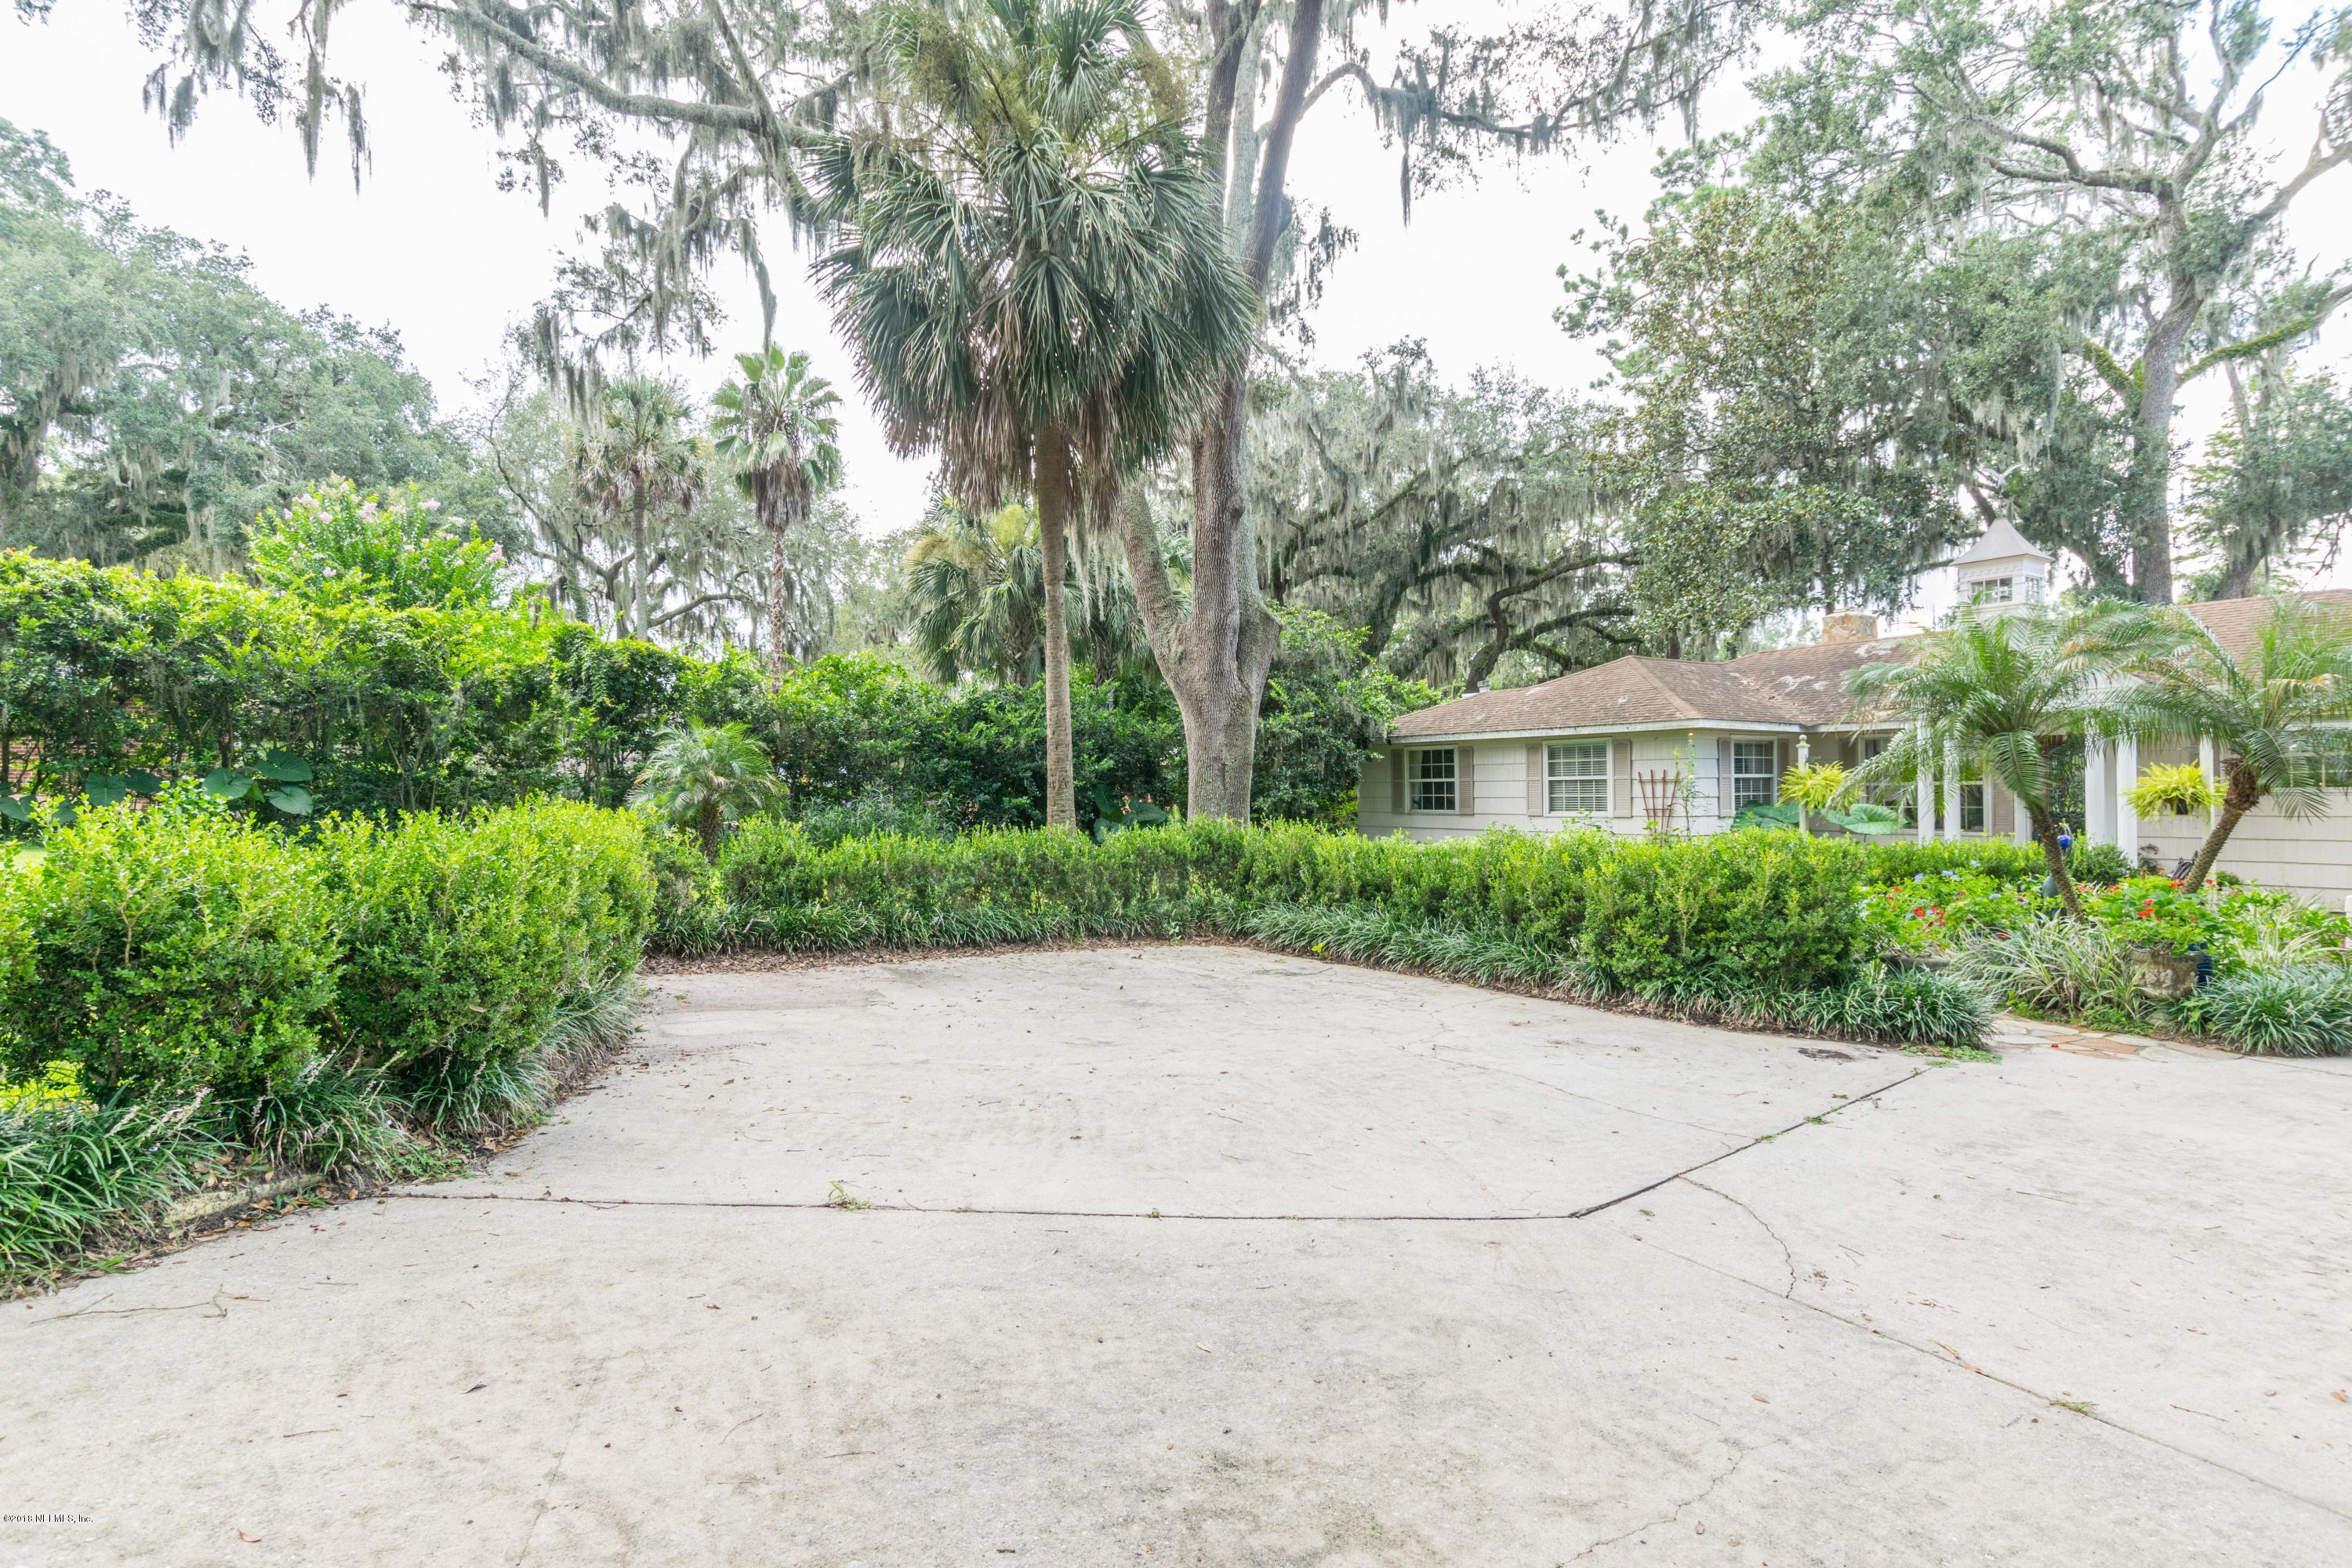 1578 HOLLY OAKS LAKE, JACKSONVILLE, FLORIDA 32225, 4 Bedrooms Bedrooms, ,2 BathroomsBathrooms,Residential - single family,For sale,HOLLY OAKS LAKE,952431